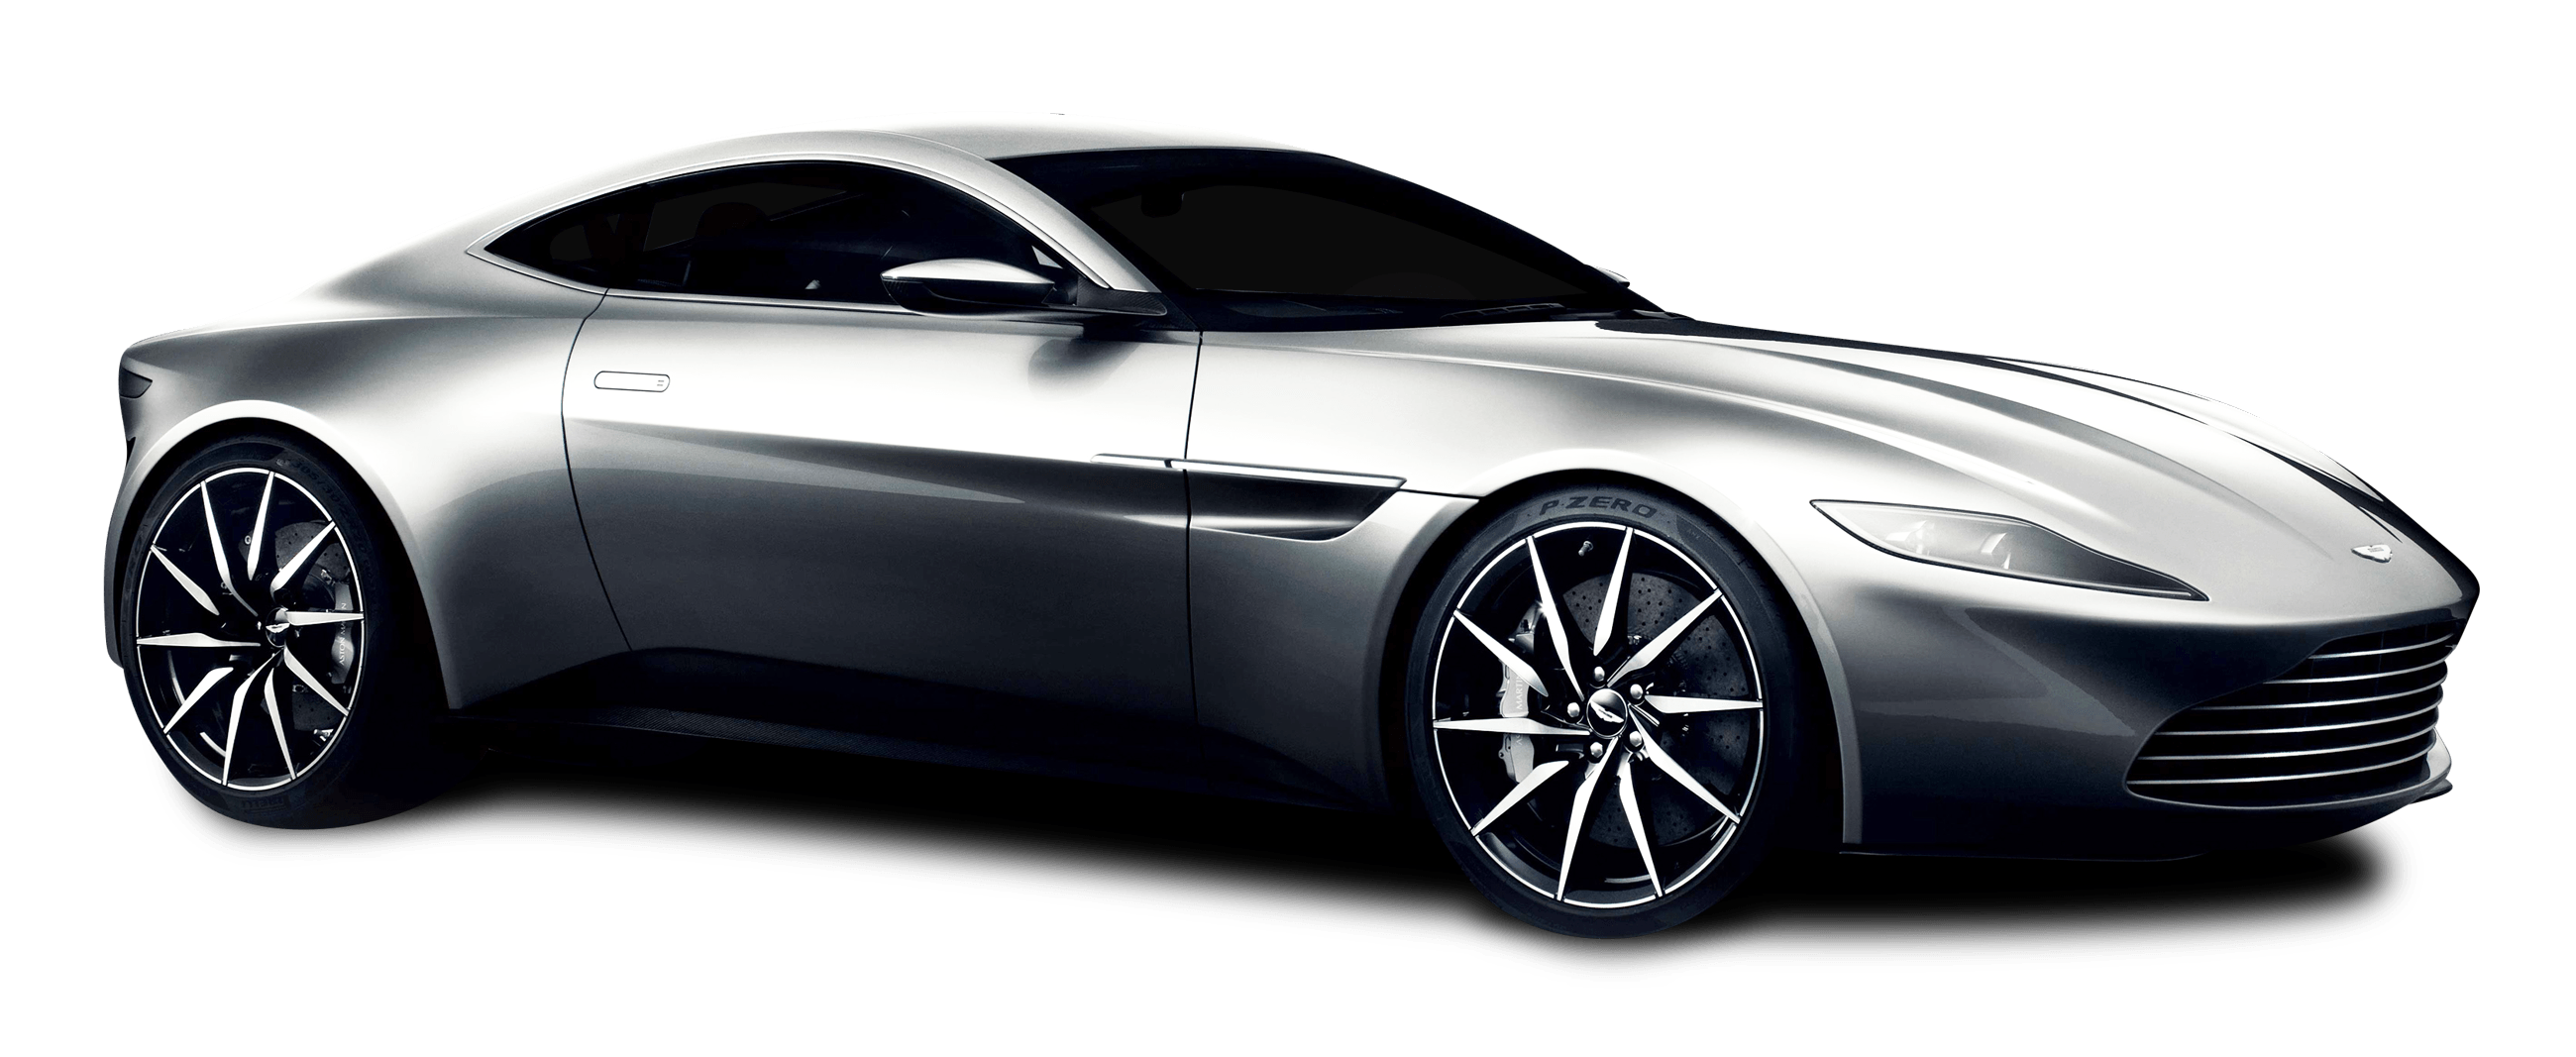 Db10 Aston Martin Transparent Png Stickpng